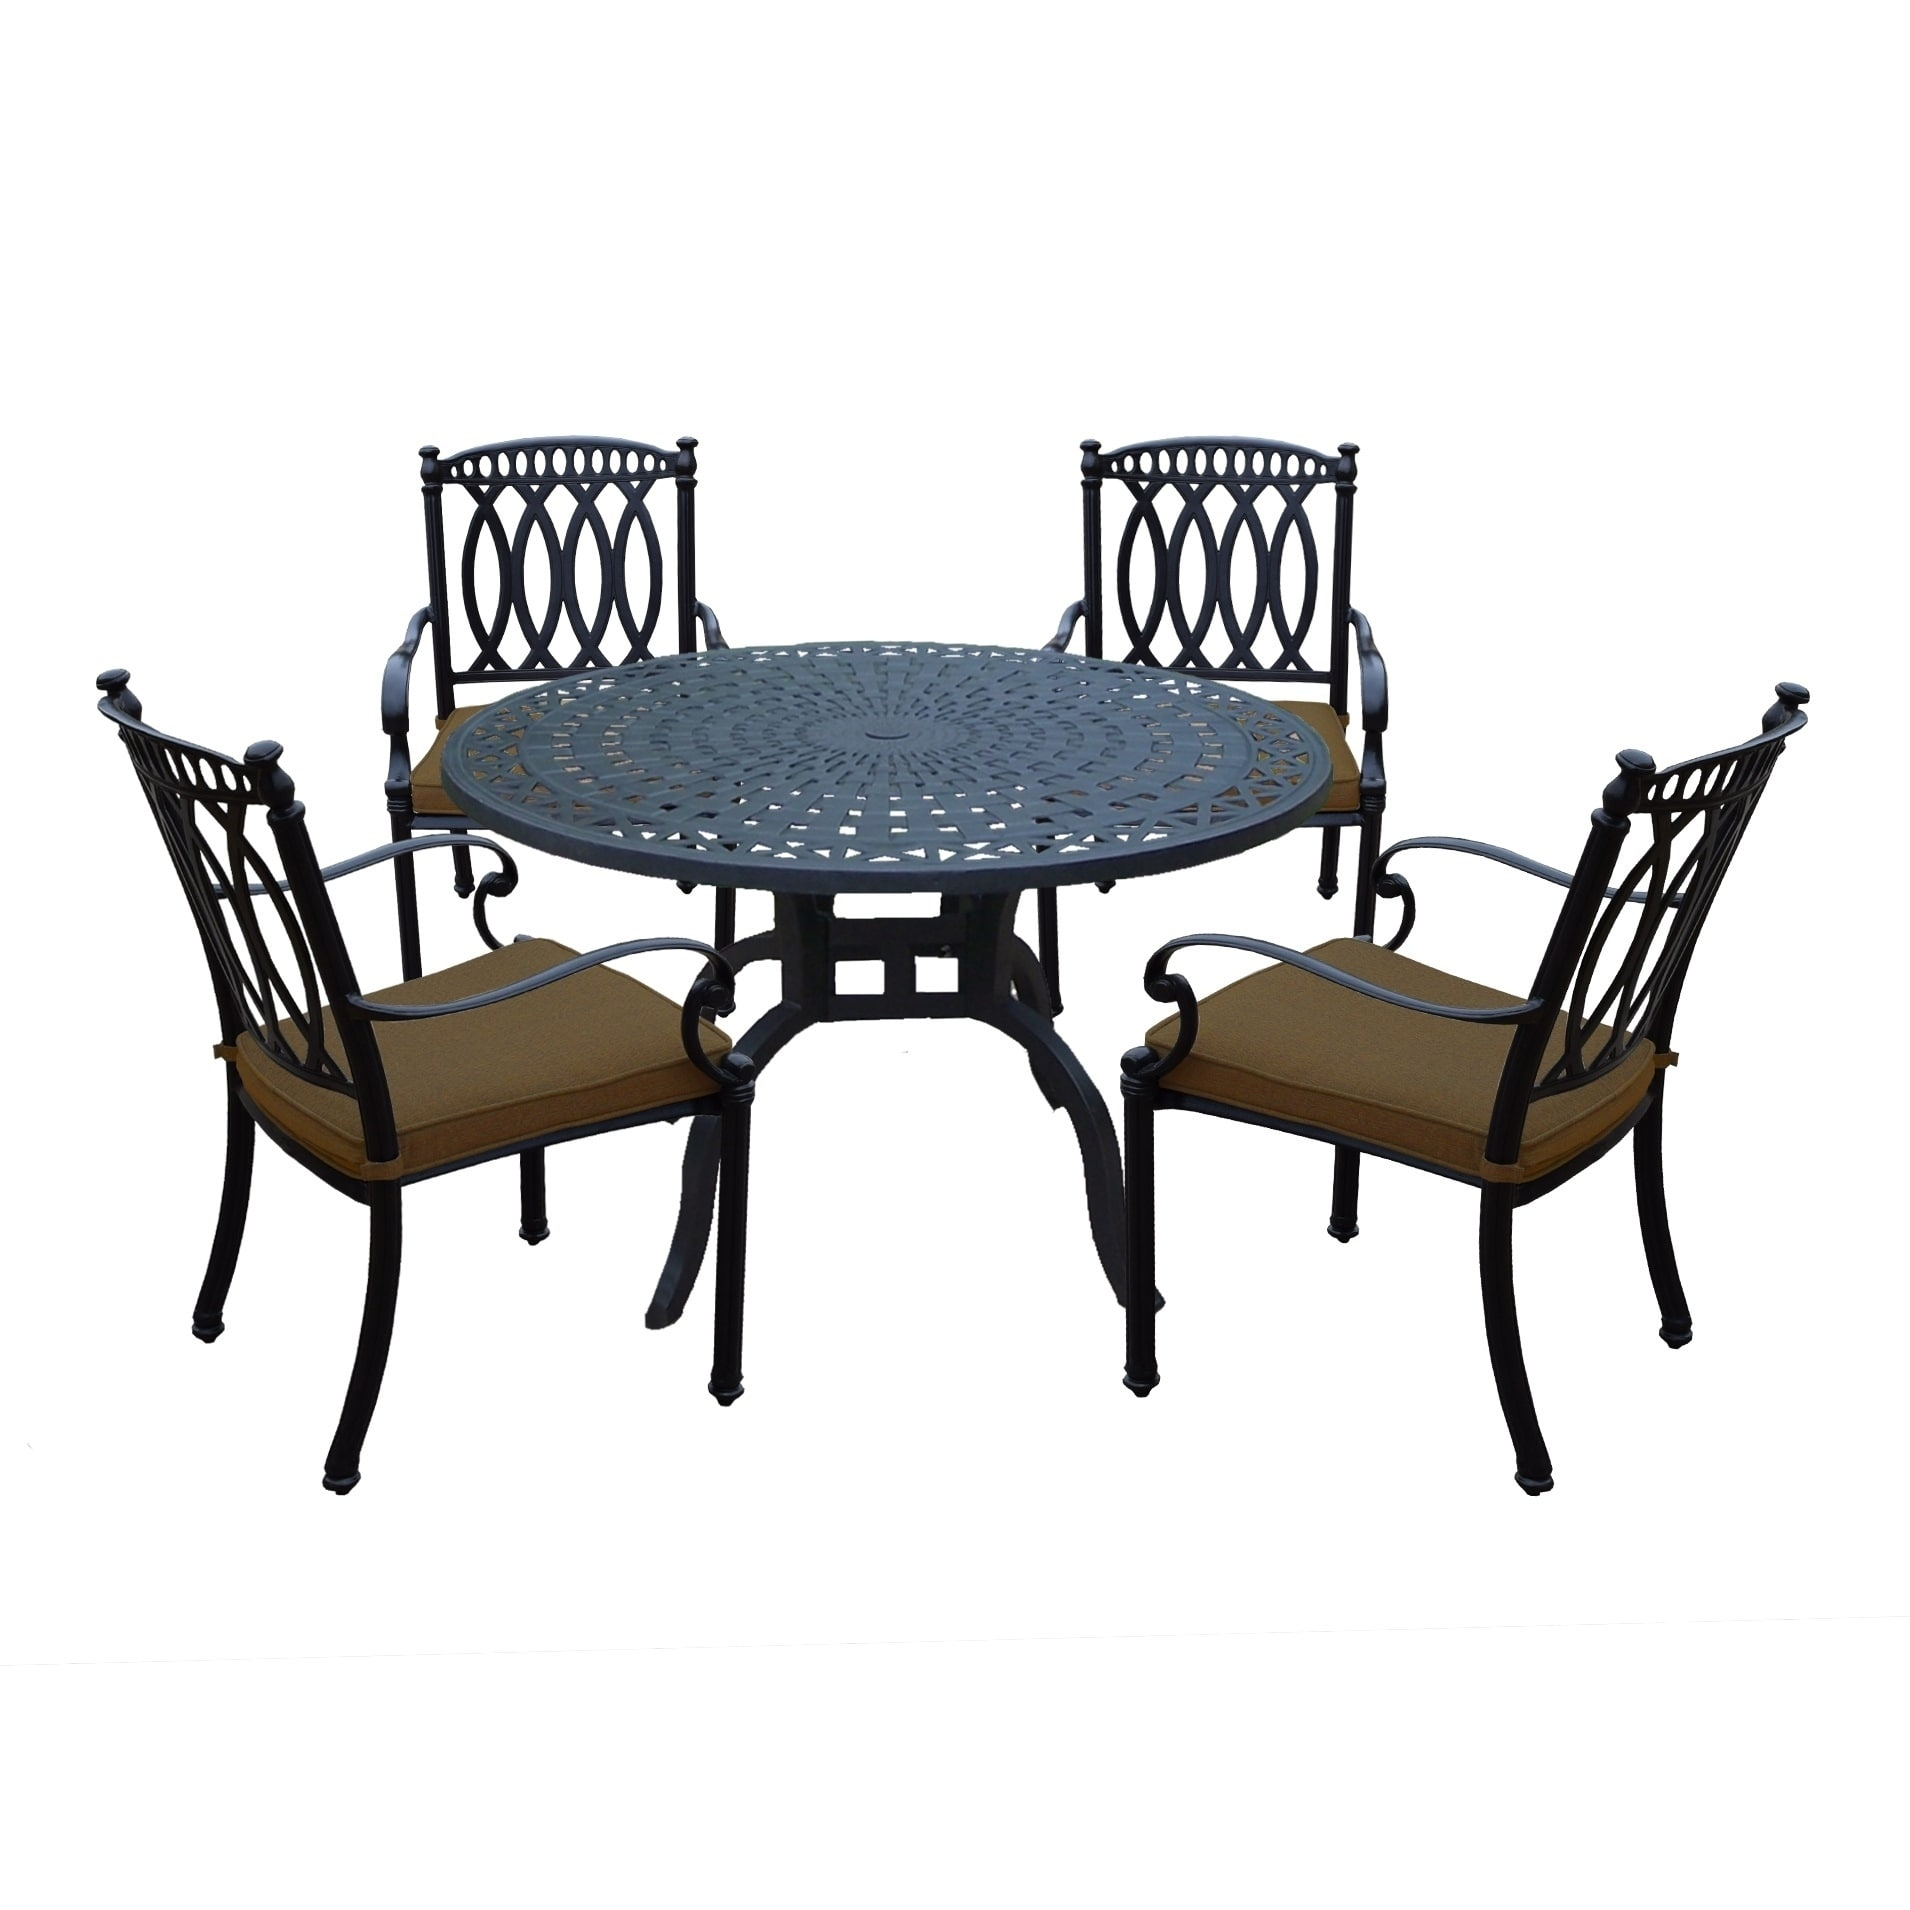 Oakland Living Aluminum 5 Piece Dining Room Set with 48in. Round Dining Table and 4 Fully Welded Cast Aluminum Sunbrella... by Overstock